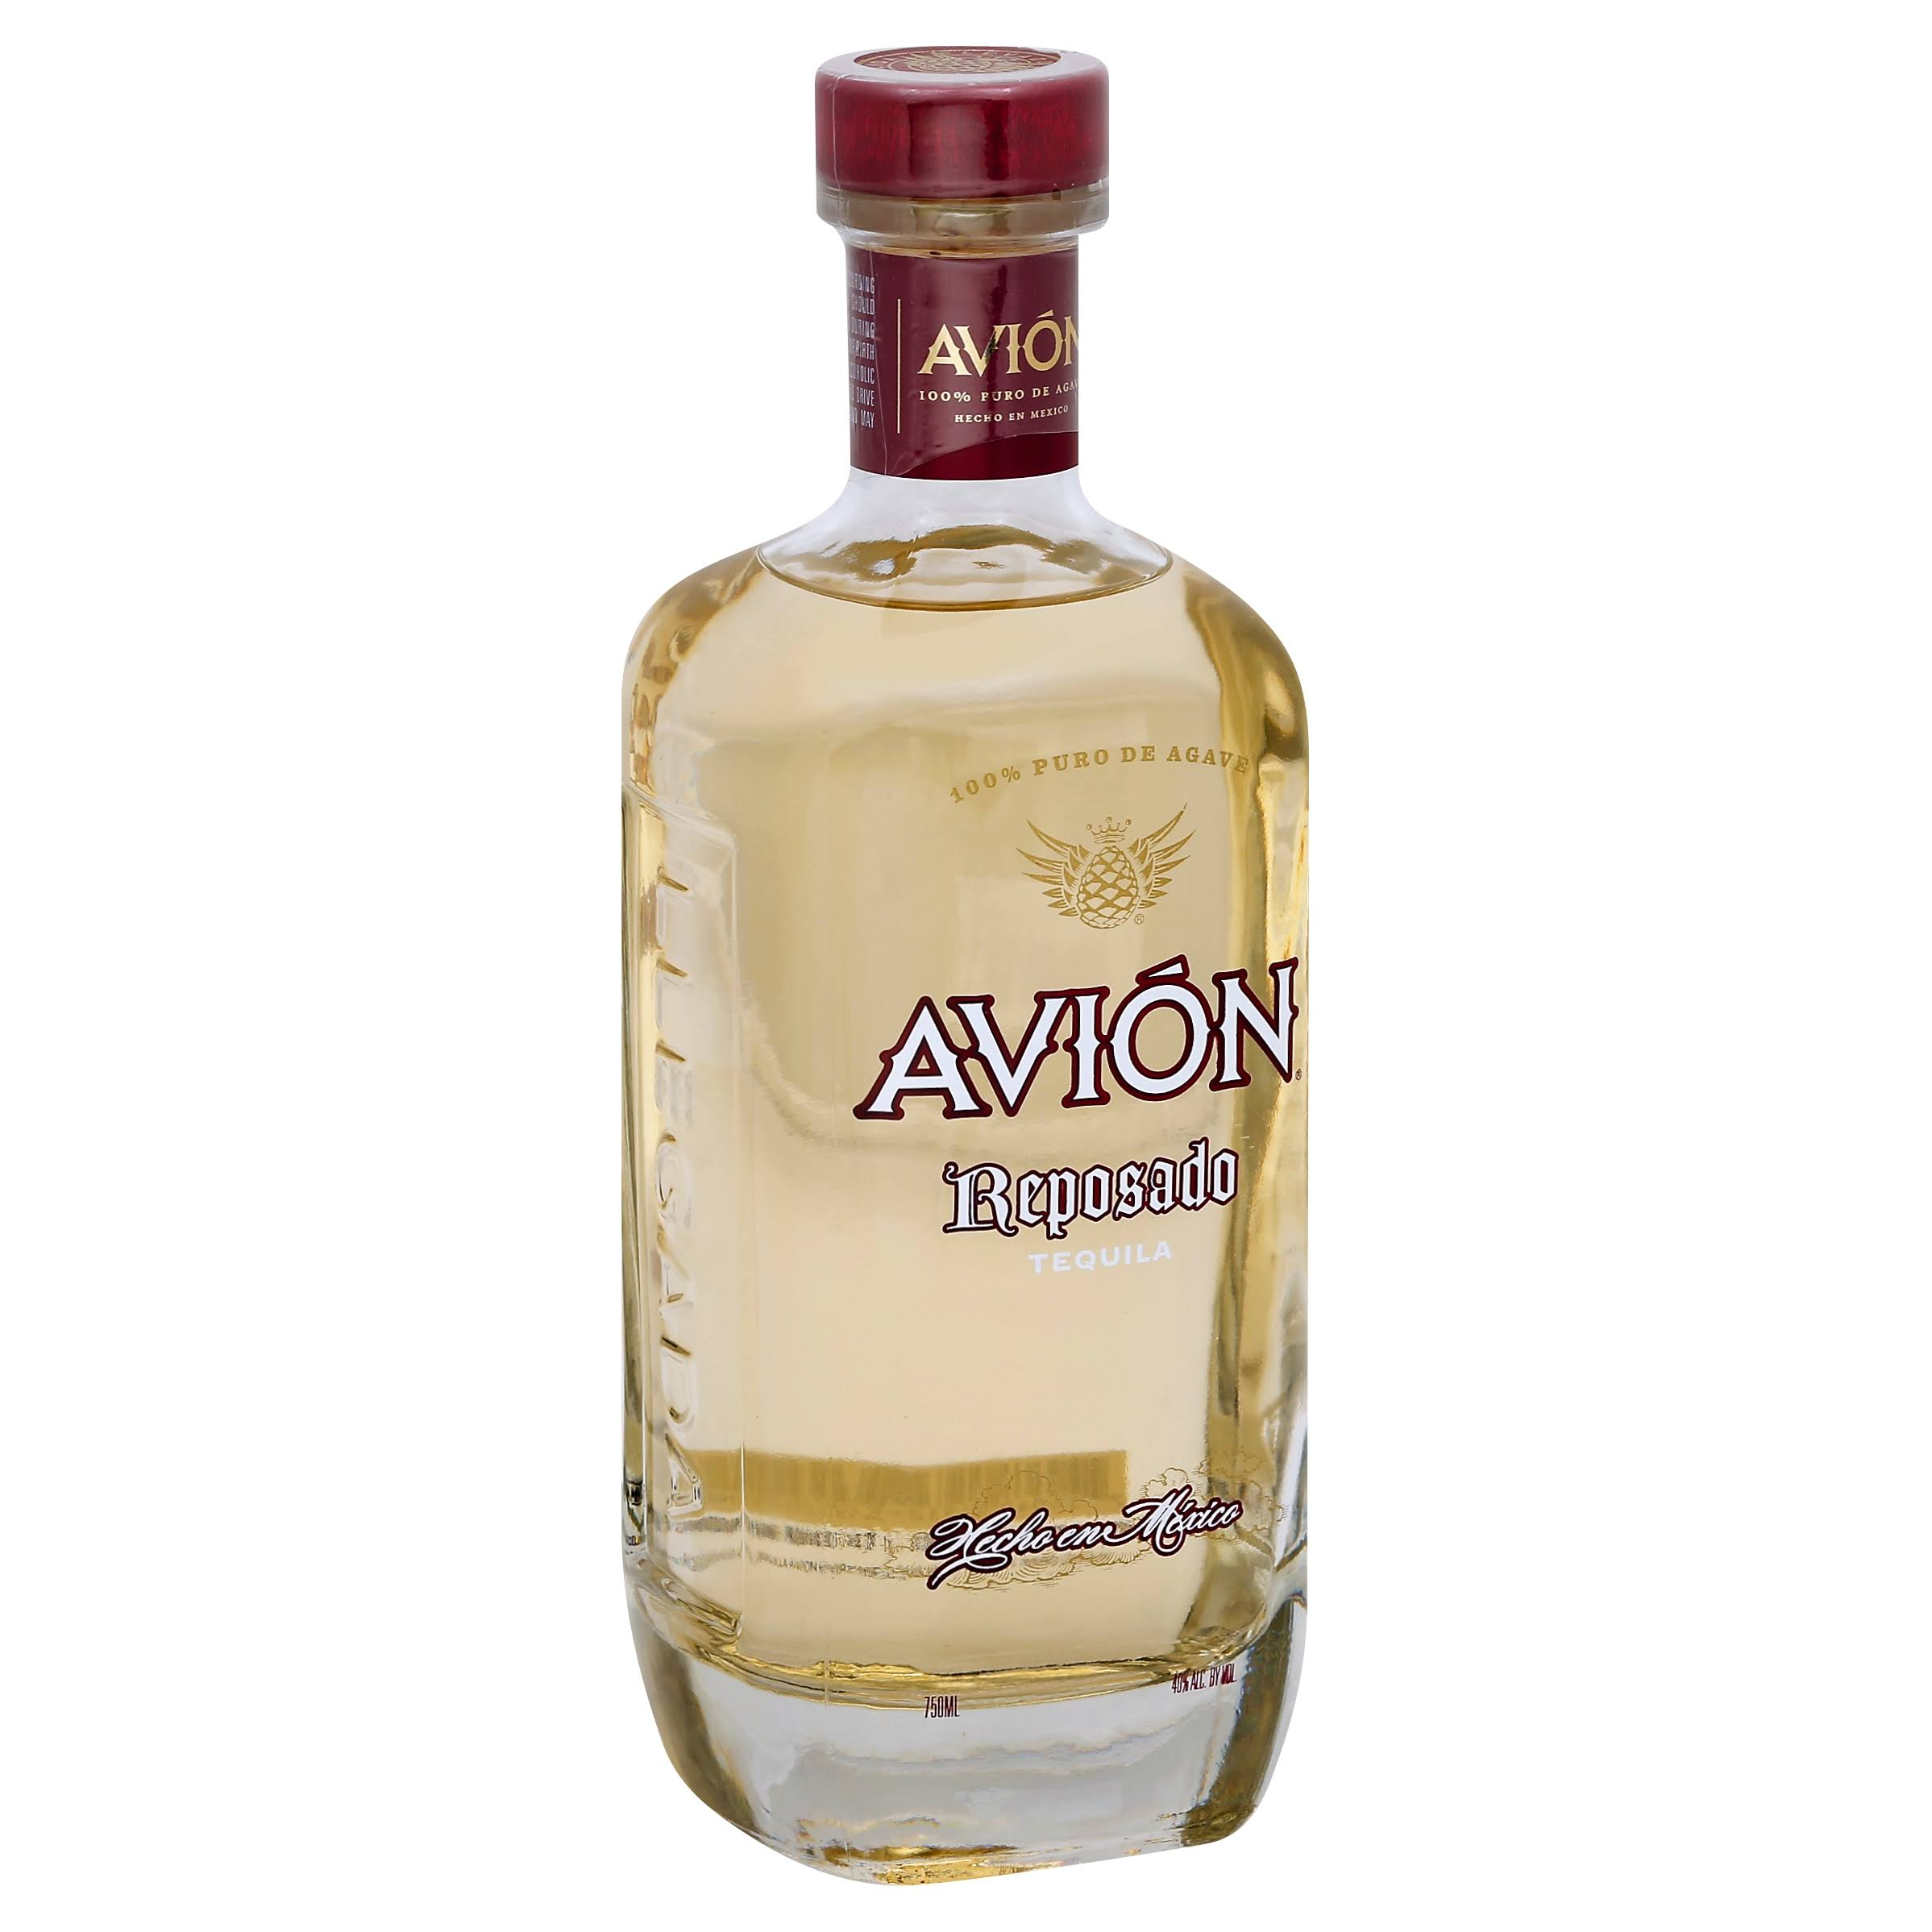 Avión Reposado Tequila - 750 ml bottle